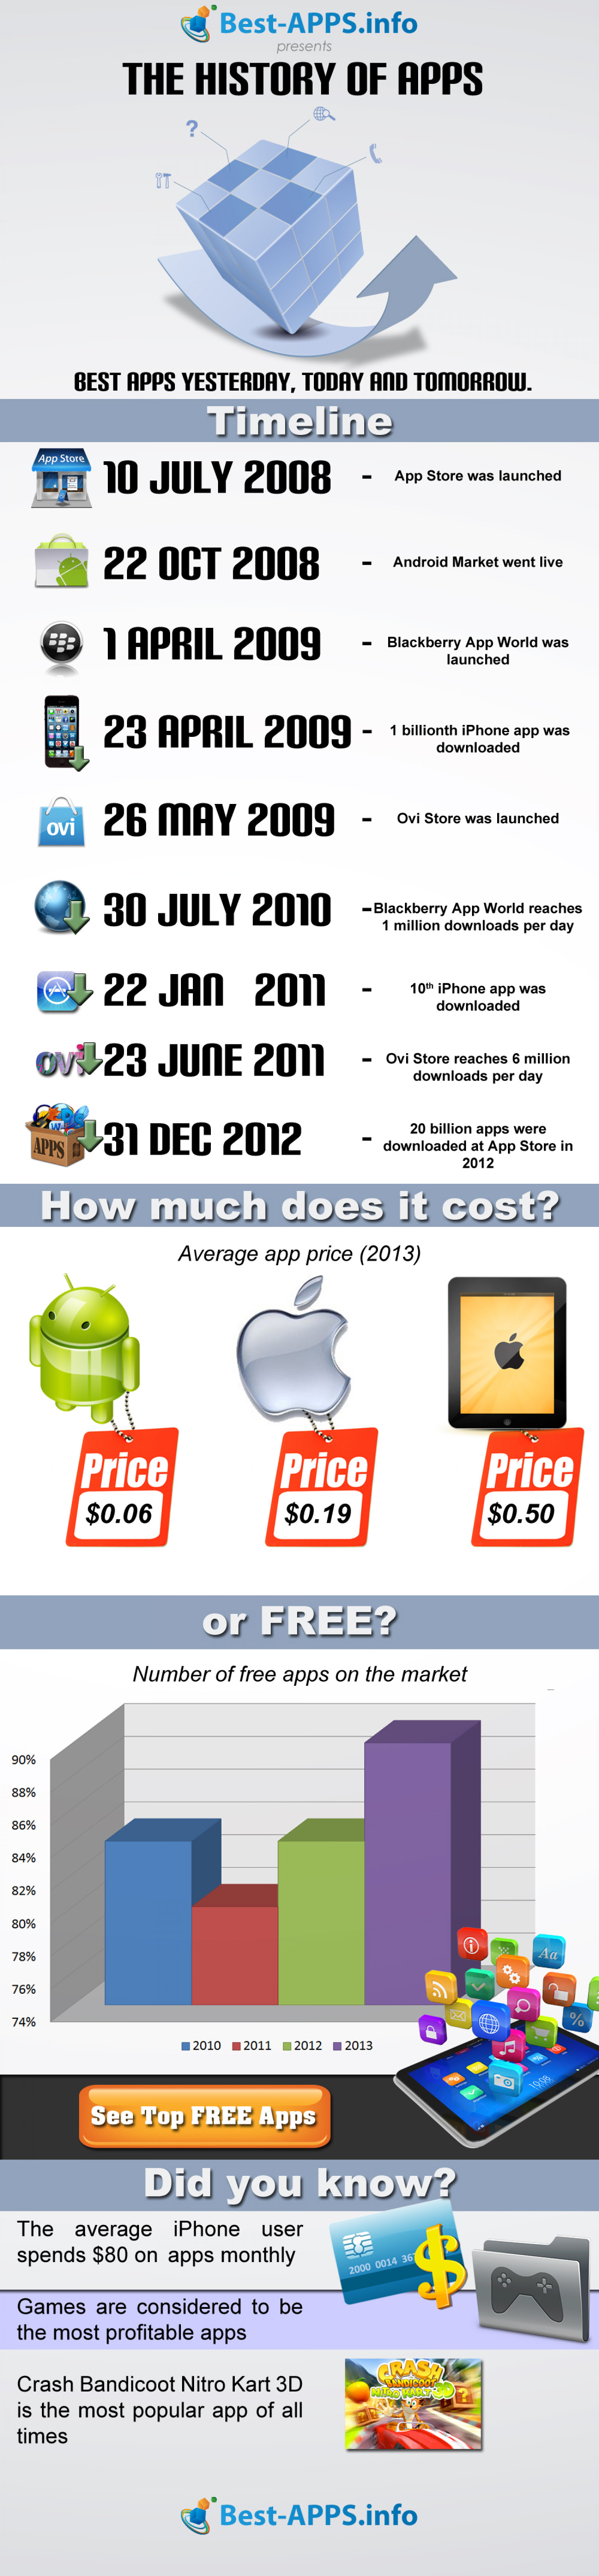 The History of Apps Infographic